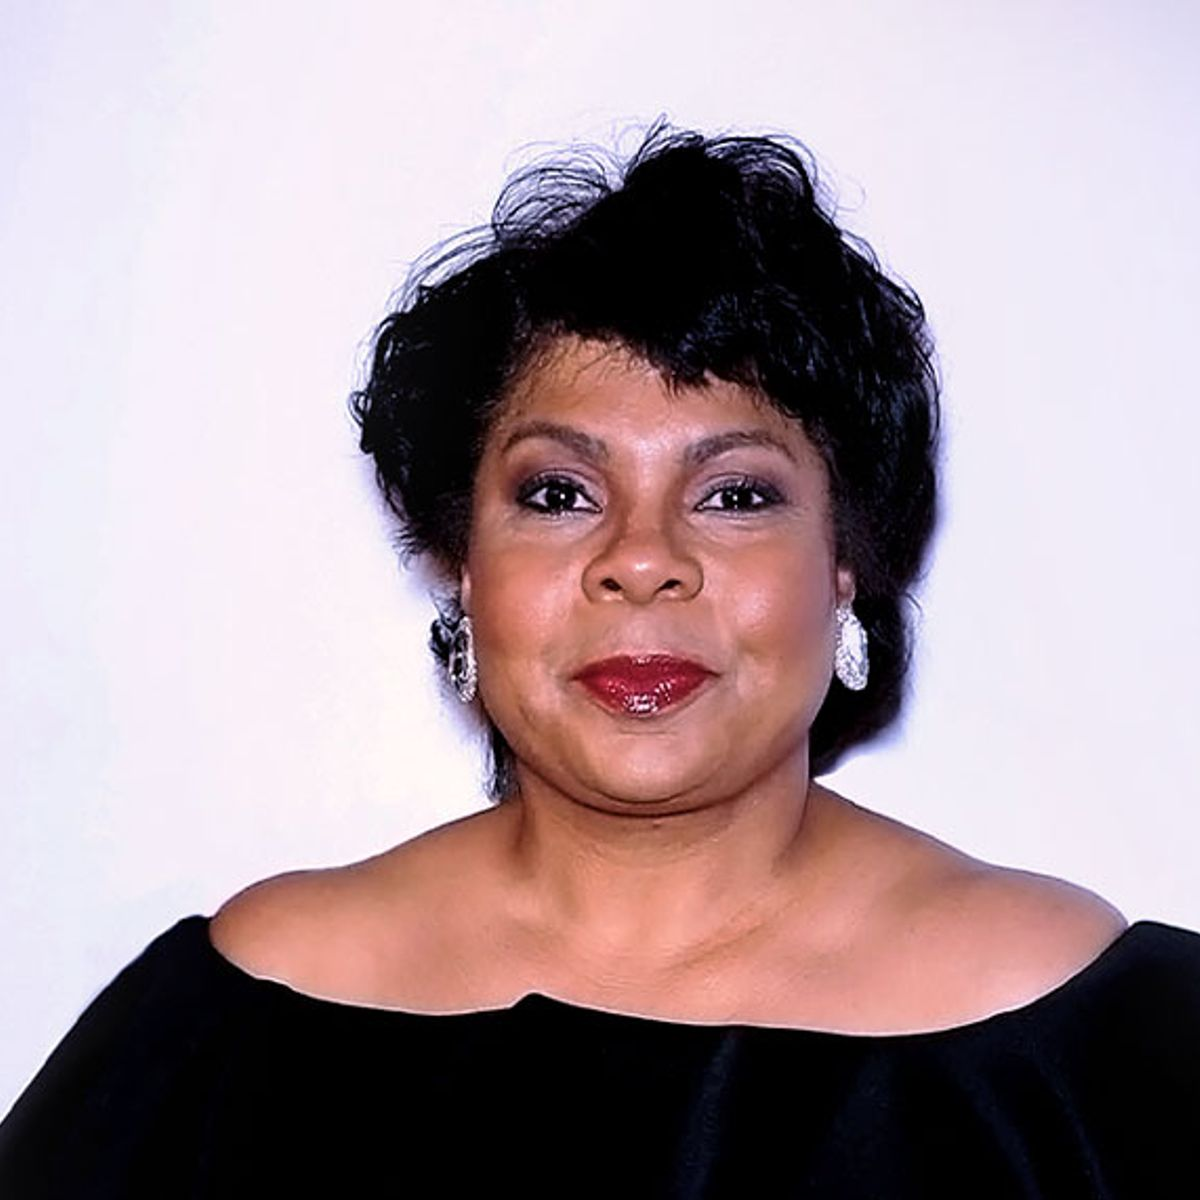 April Ryan On Her Instagram Show Donald Trump And Lockdown As A